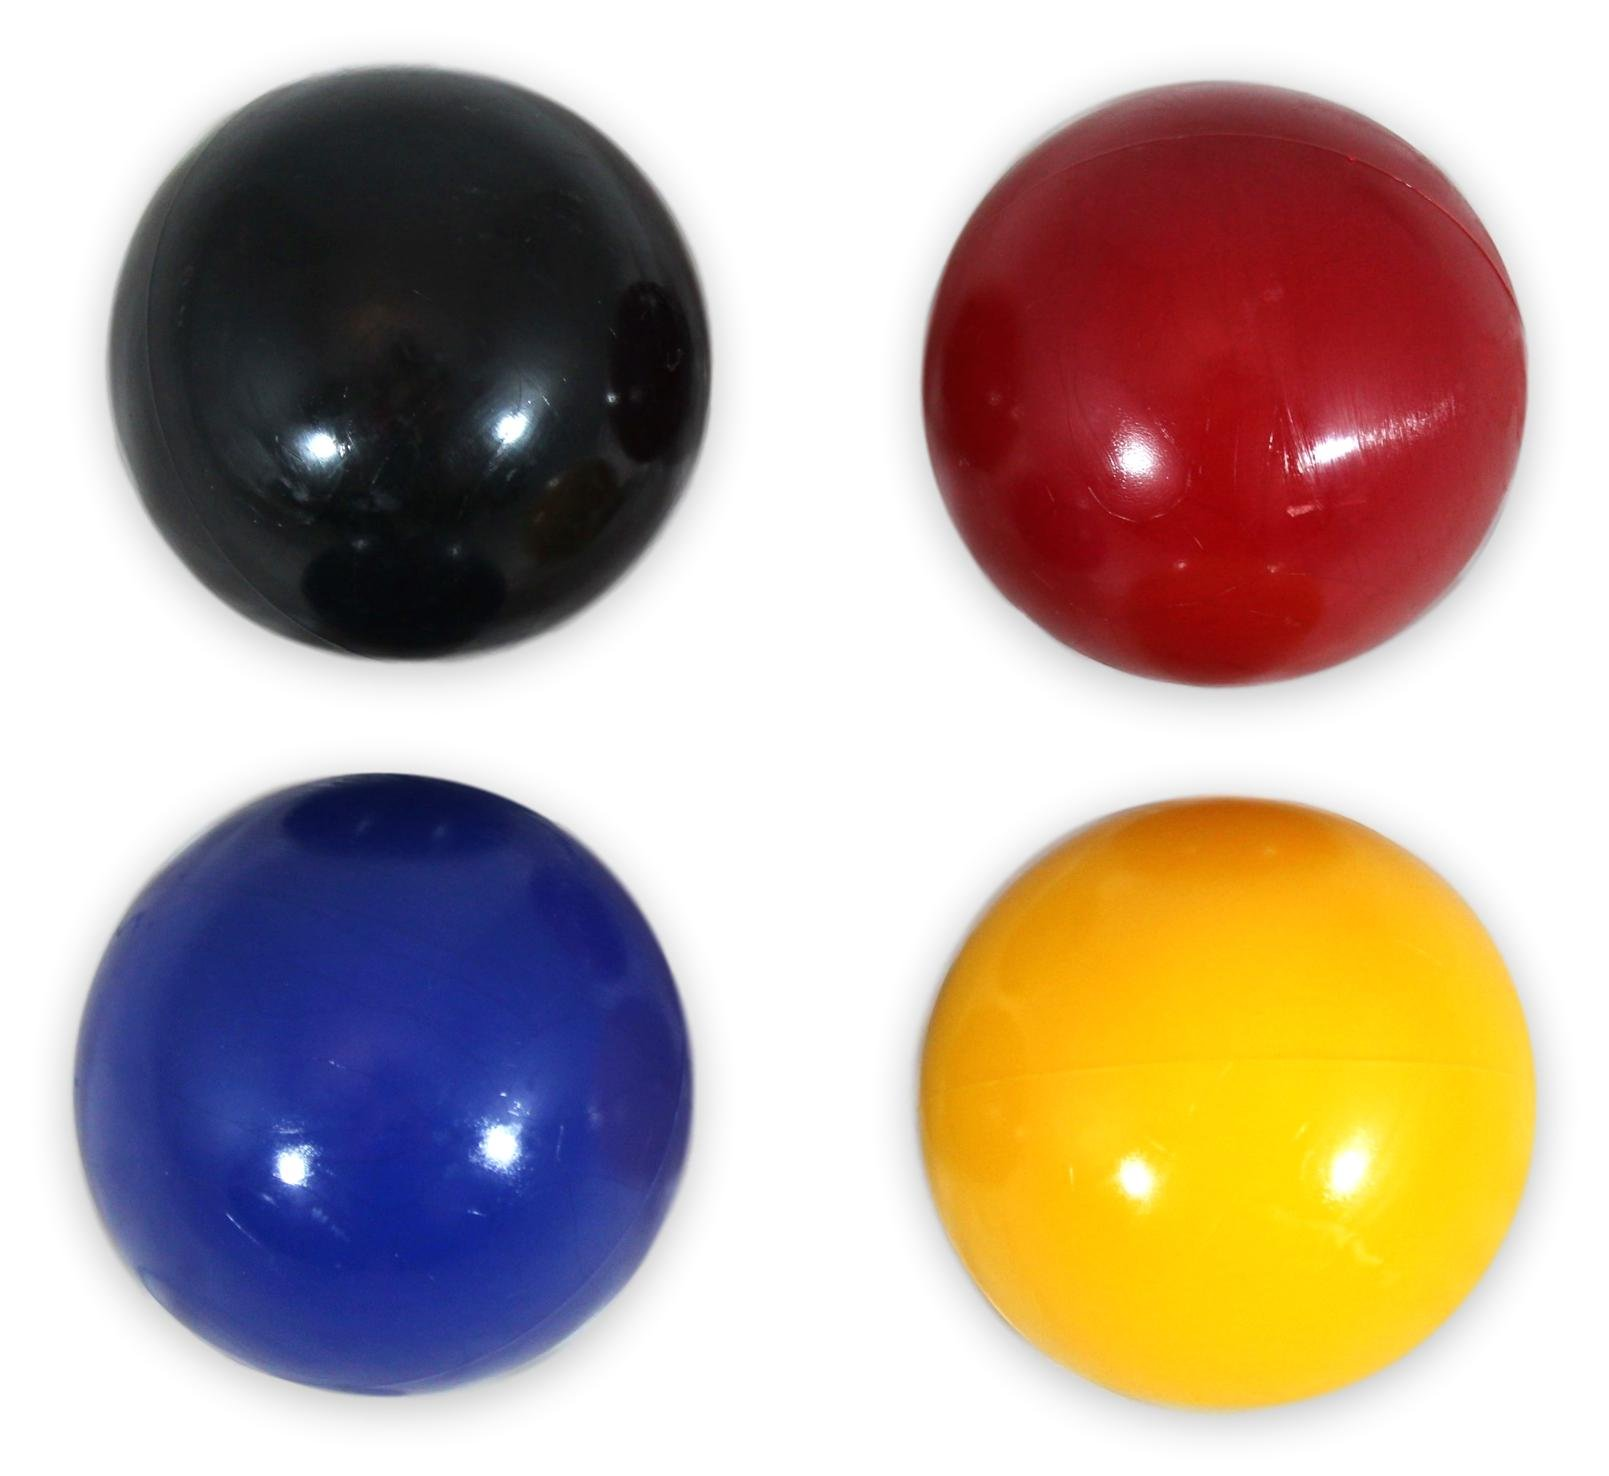 AmishToyBox.com Set of 4 Replacement Croquet Balls, Made in the USA, by AmishToyBox.com